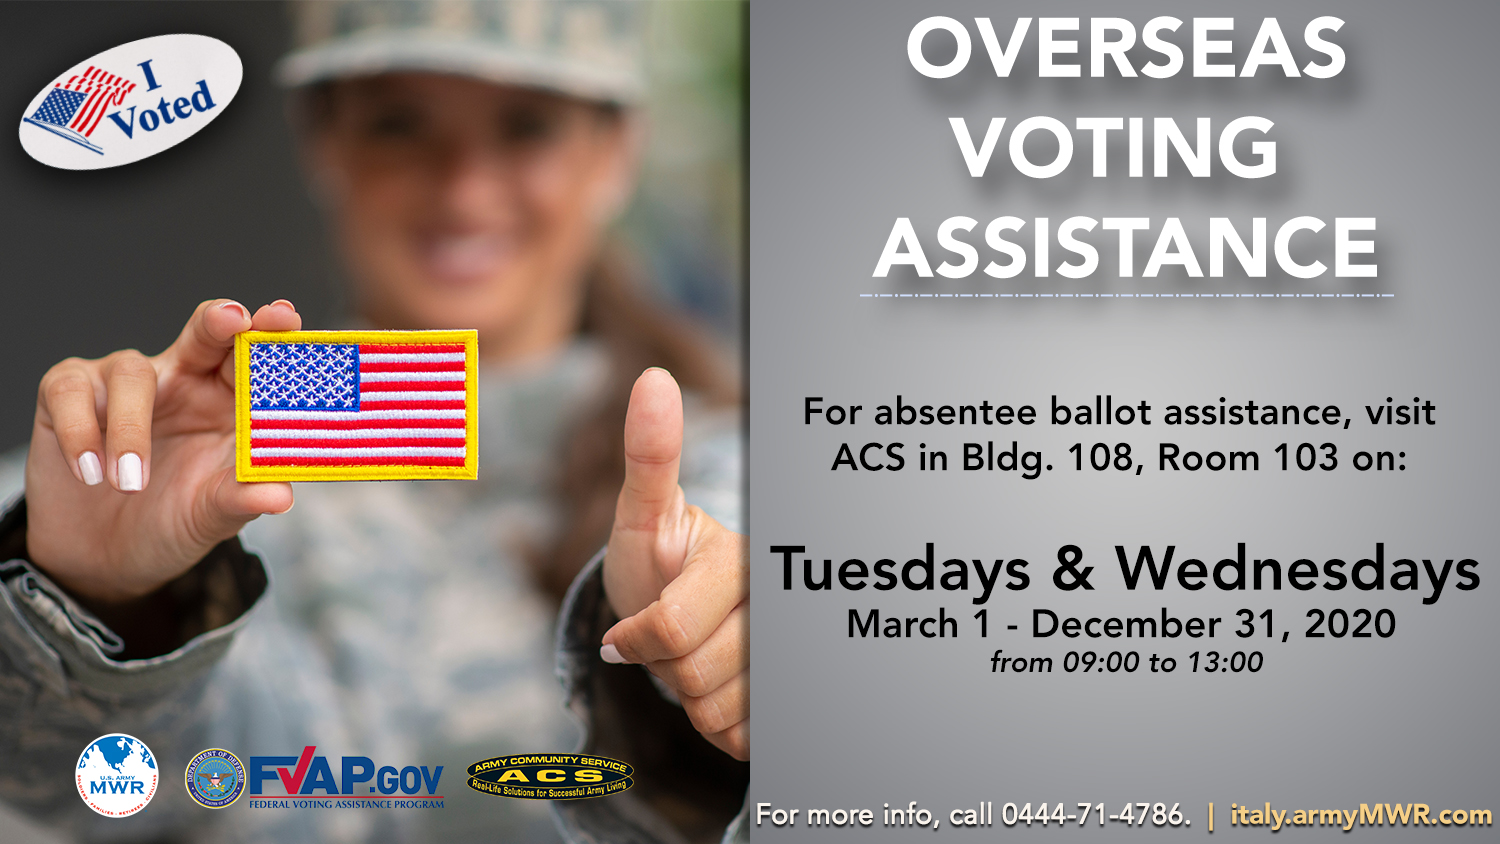 CANCELLED: Voting Assistance Program